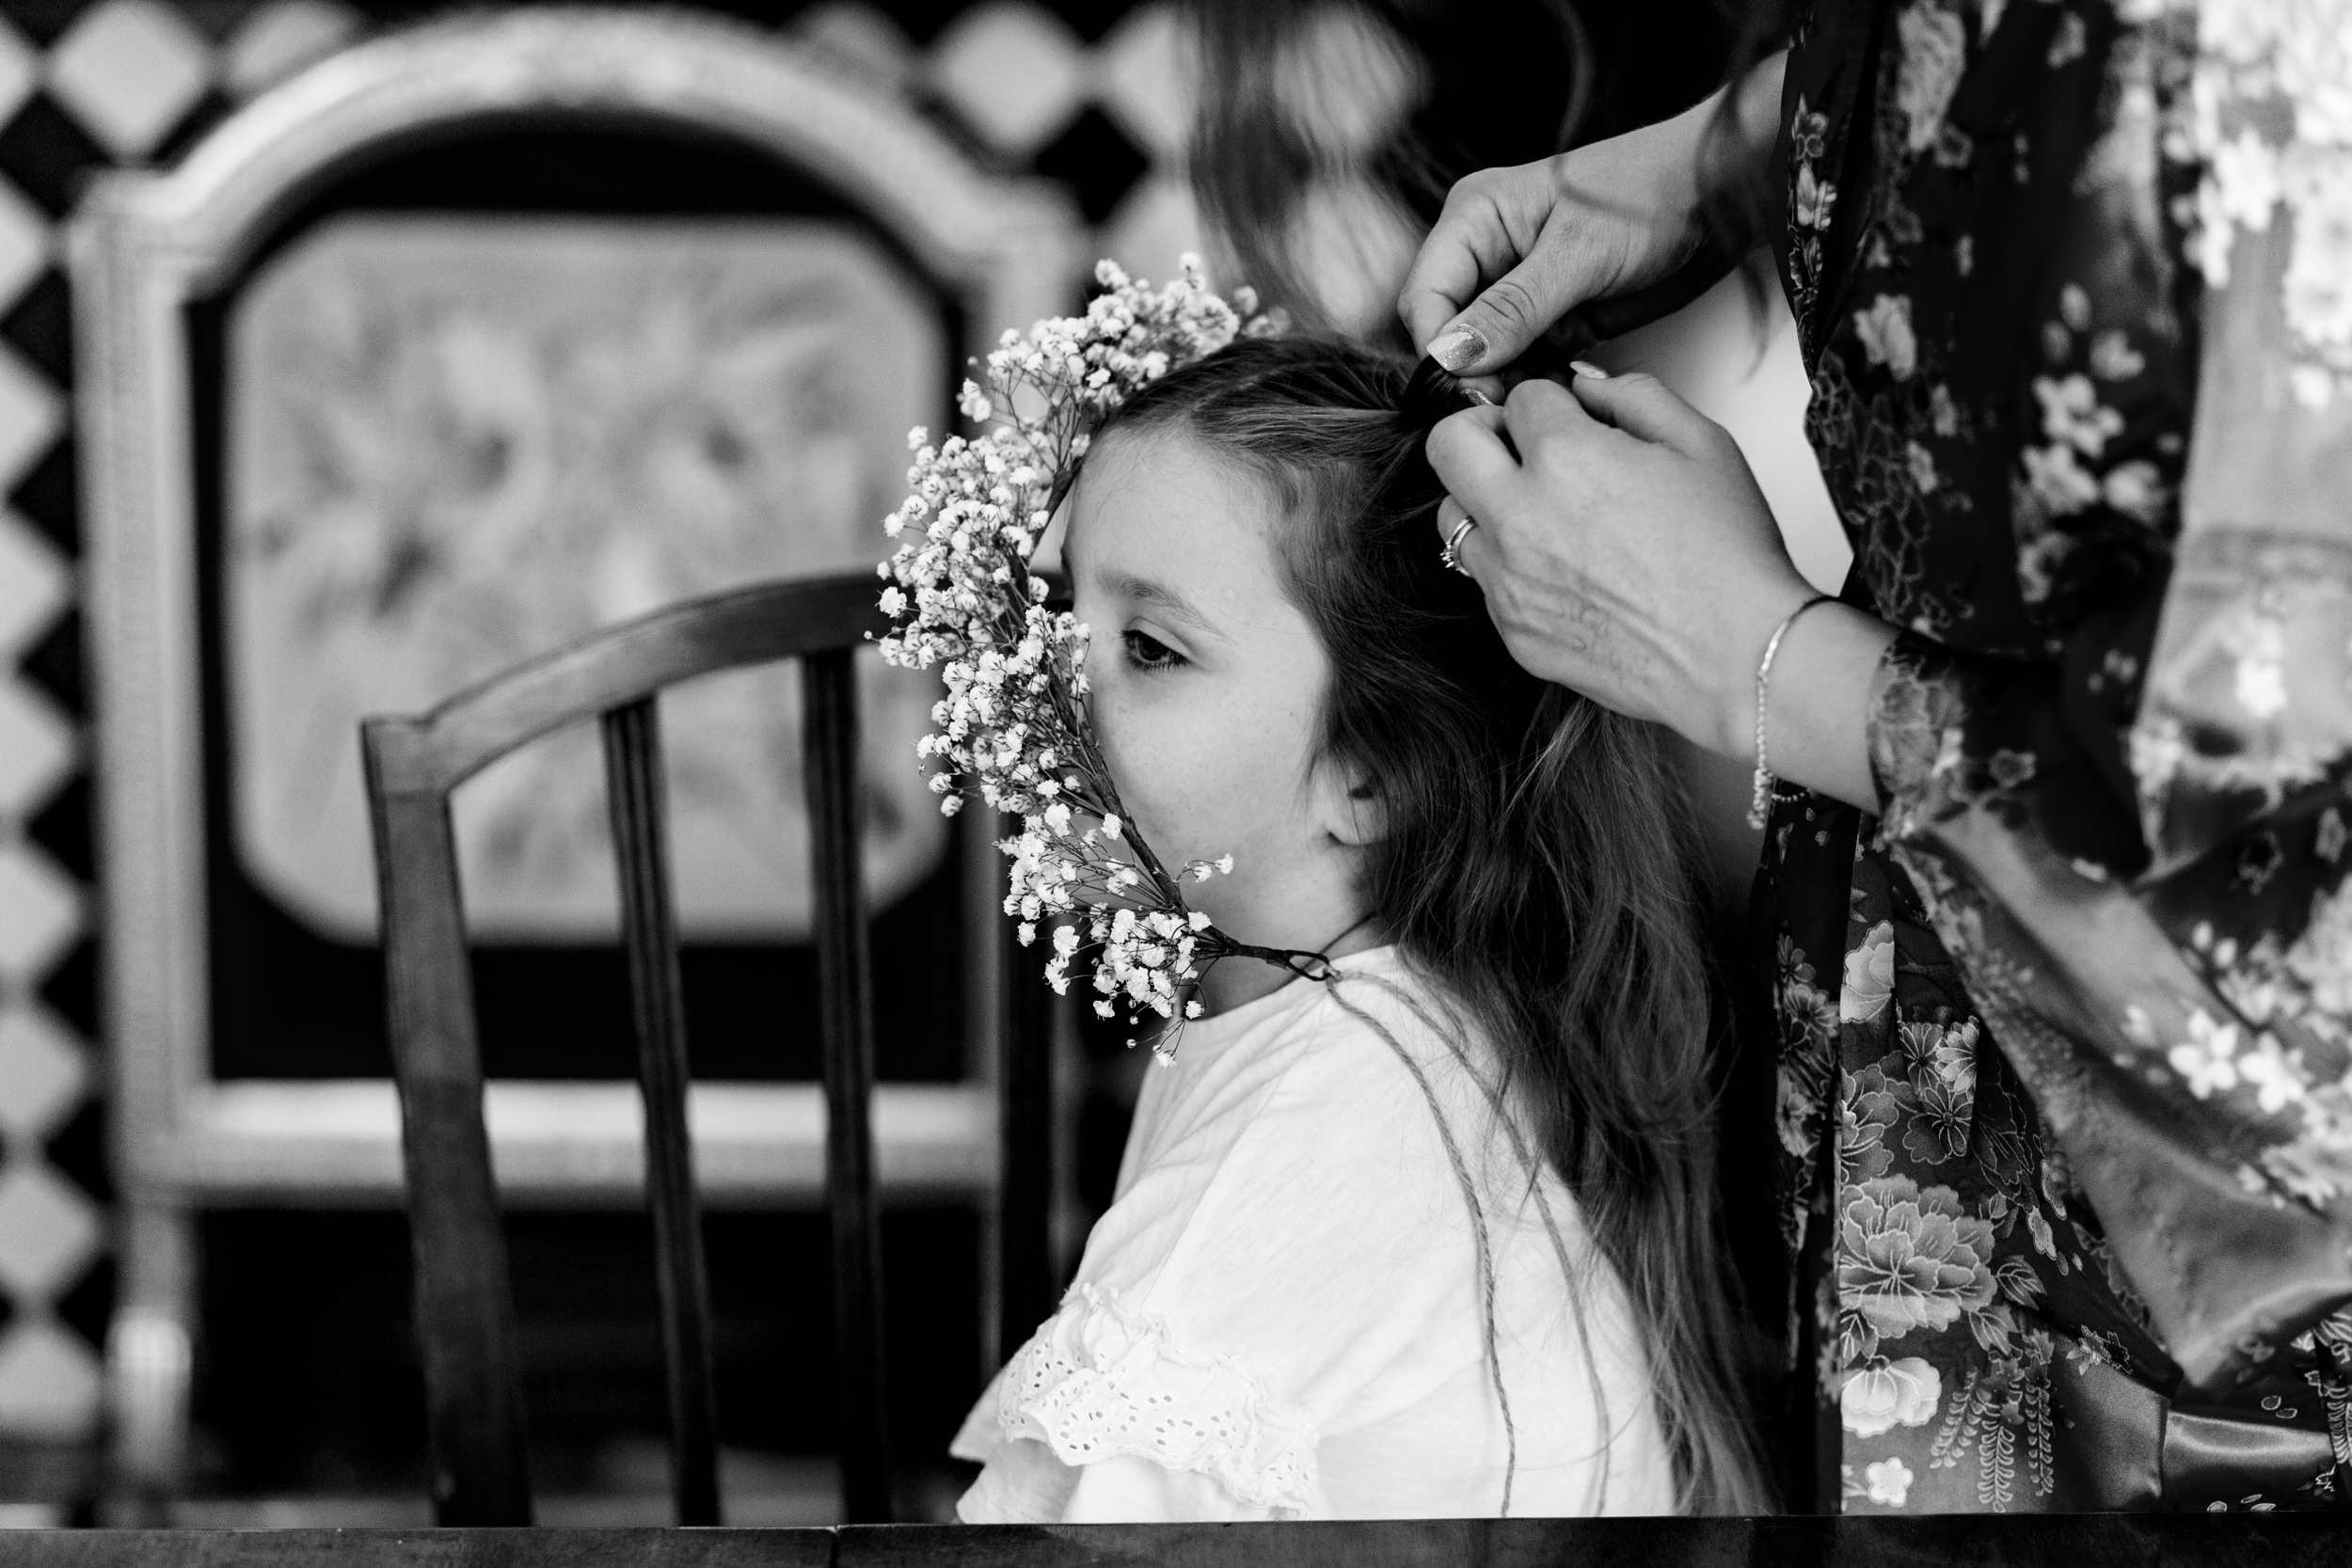 flower girl getting hair and flower crown fixed. scotland wedding photography by emma and rich.